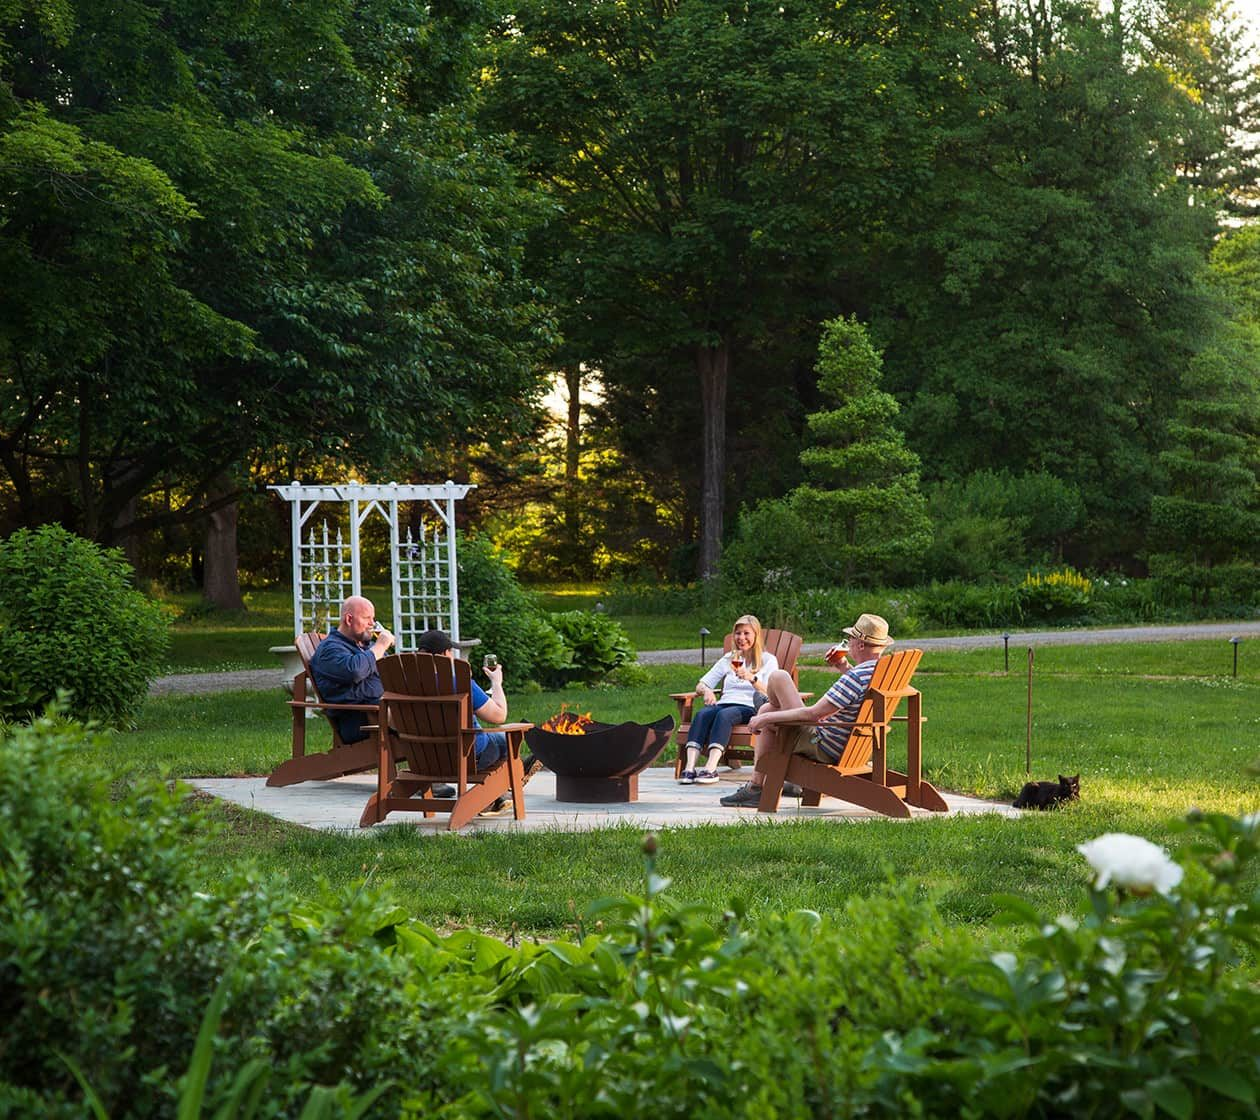 A group of friends gather around a fire pit and roast hotdogs